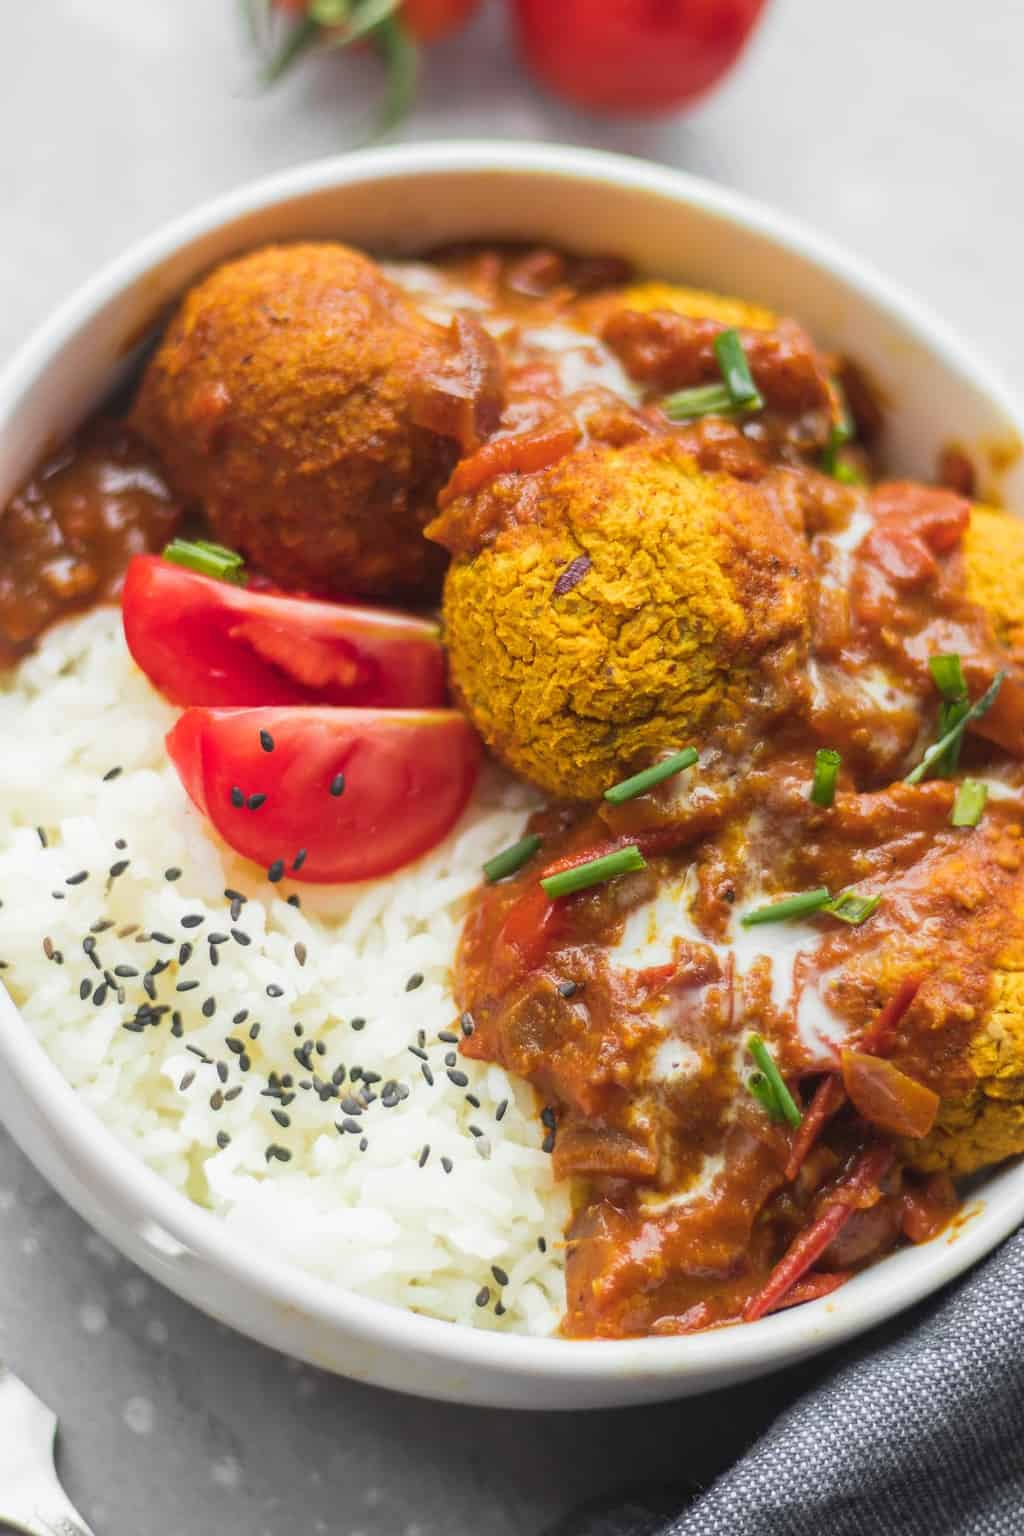 Vegan lentil meatballs in curry sauce over a bed of rice